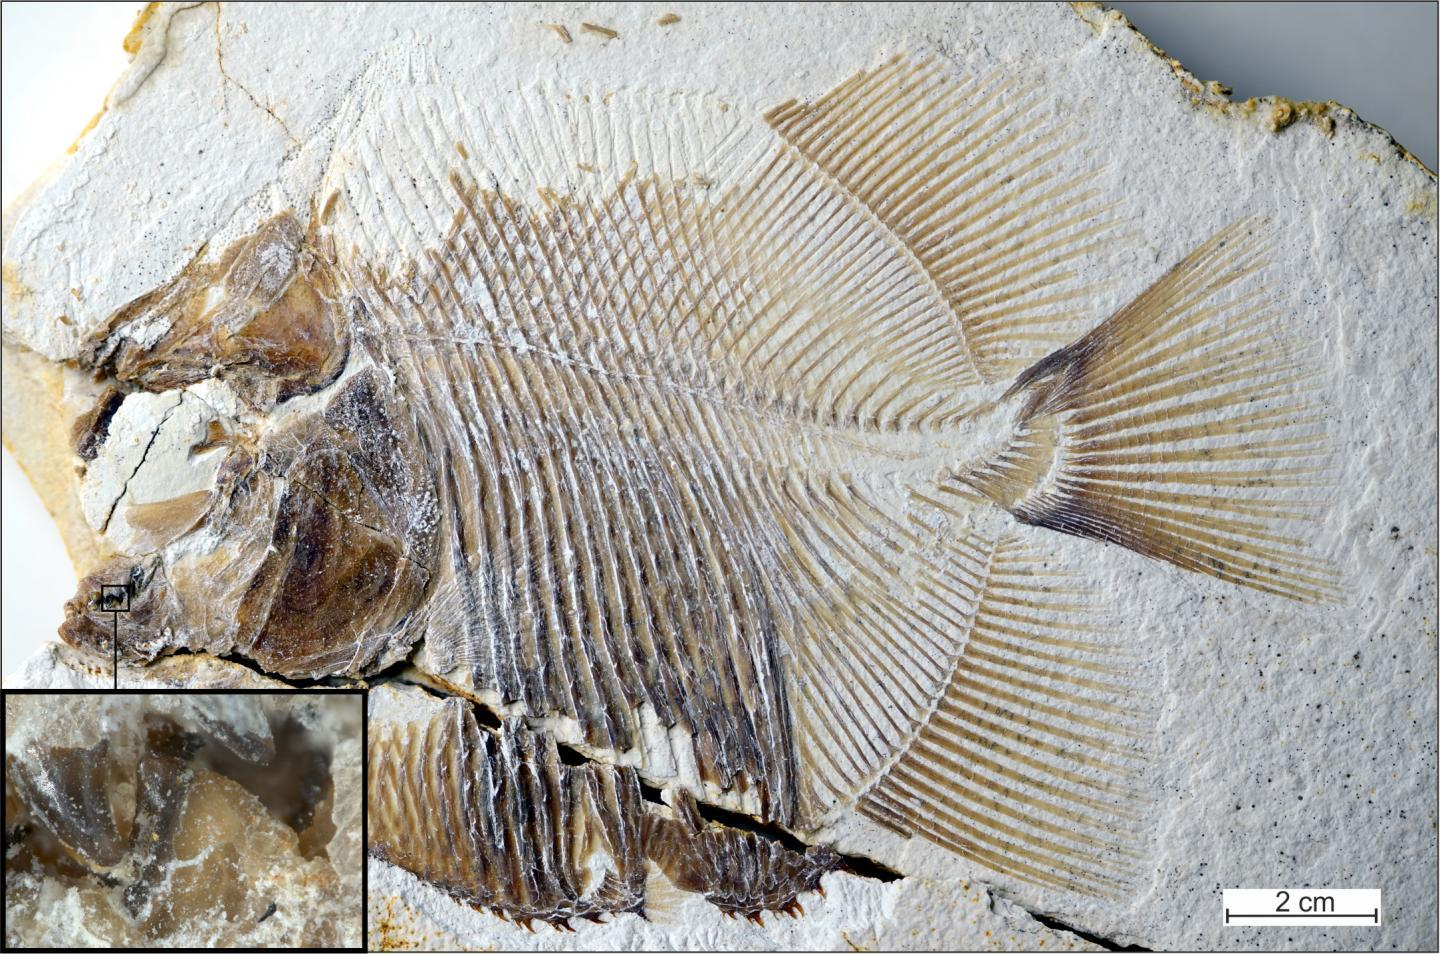 Originally discovered in limestone deposits in the Solnhofen region of southern Germany, the fossilized remains of one the fish ended up in the collection of the Jura-Museum in the German town of Eichstätt